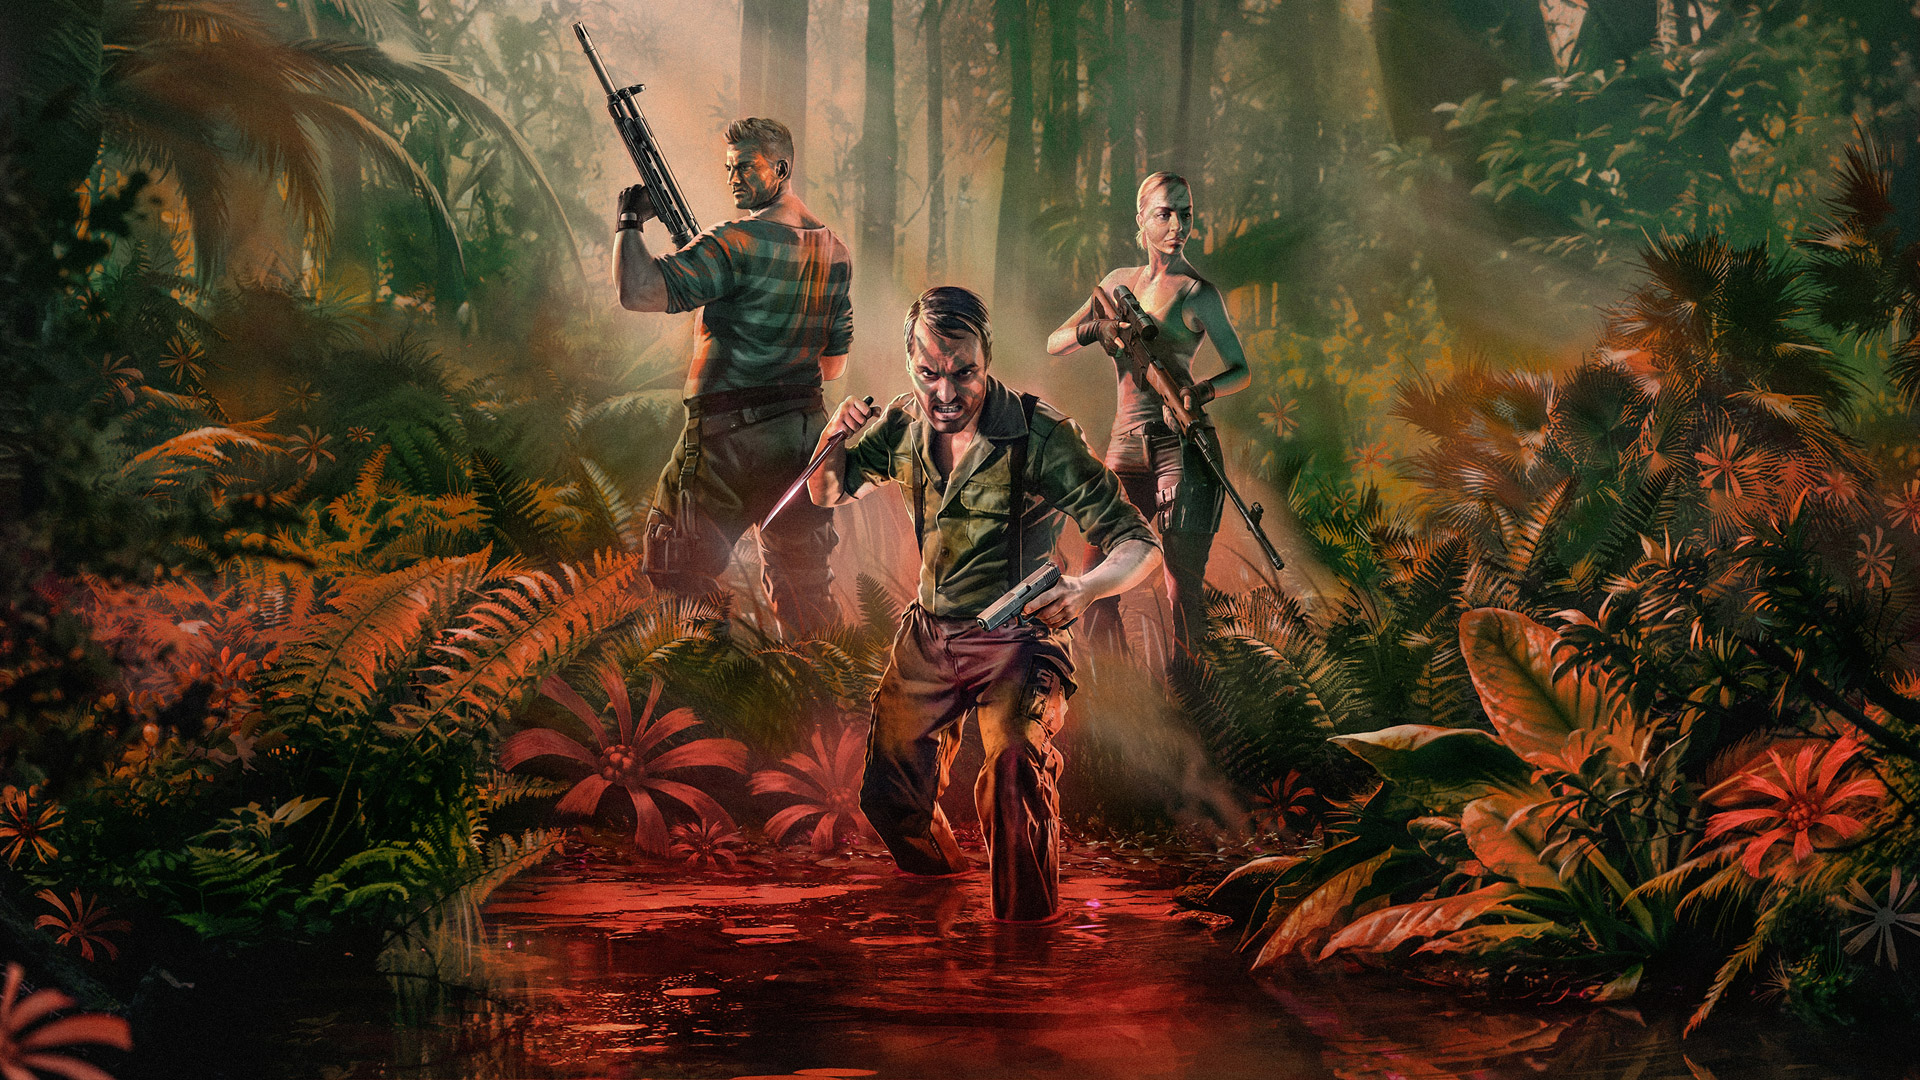 Jagged Alliance: Rage! Wallpaper in 1920x1080